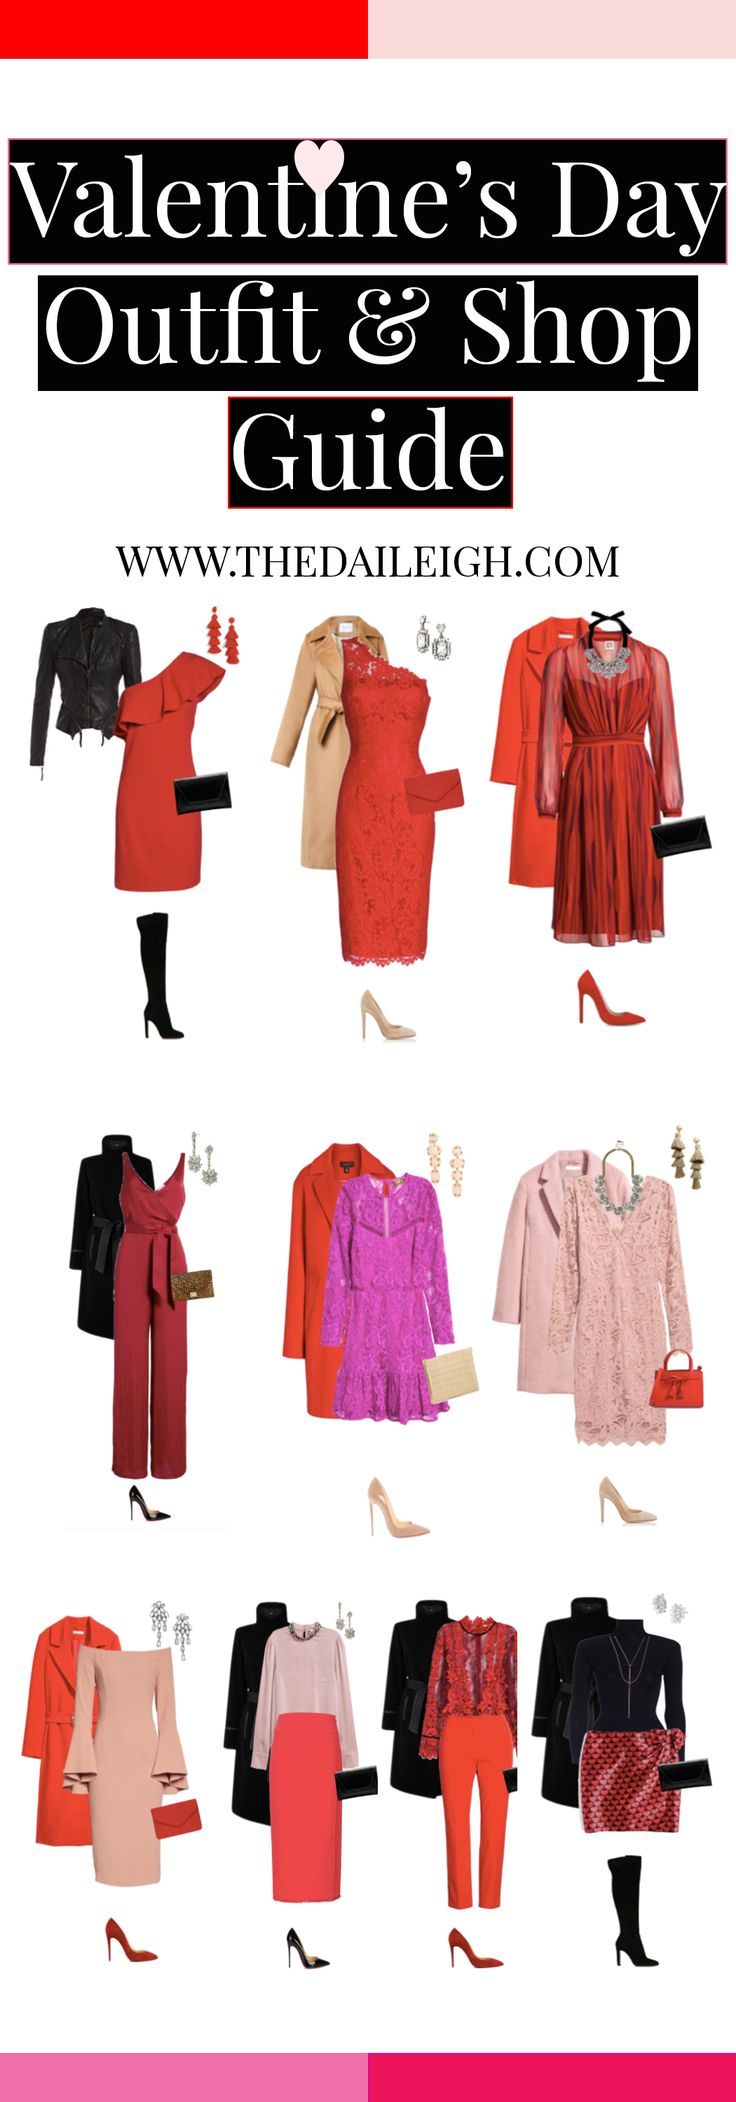 What To Wear On Valentines Day, What To Wear On Valentines Day Dates, What To Wear On Valentines Day Classy, Valentines Day Outfit, Valentines Day Outfits, Valentines Day Outfit Date, Valentines Day Outfit Ideas For Women, Valentines Day Outfits Date, Winter Date Night Outfit, Winter Date Night Ideas, Winter Date Night Outfit Ideas, Winter Date Night, Date Night Outfit Ideas, Date Night Outfit Winter, Date Night Outfit Winter Casual, Date Night Outfit Winter Dressy, What To Wear Date Night…